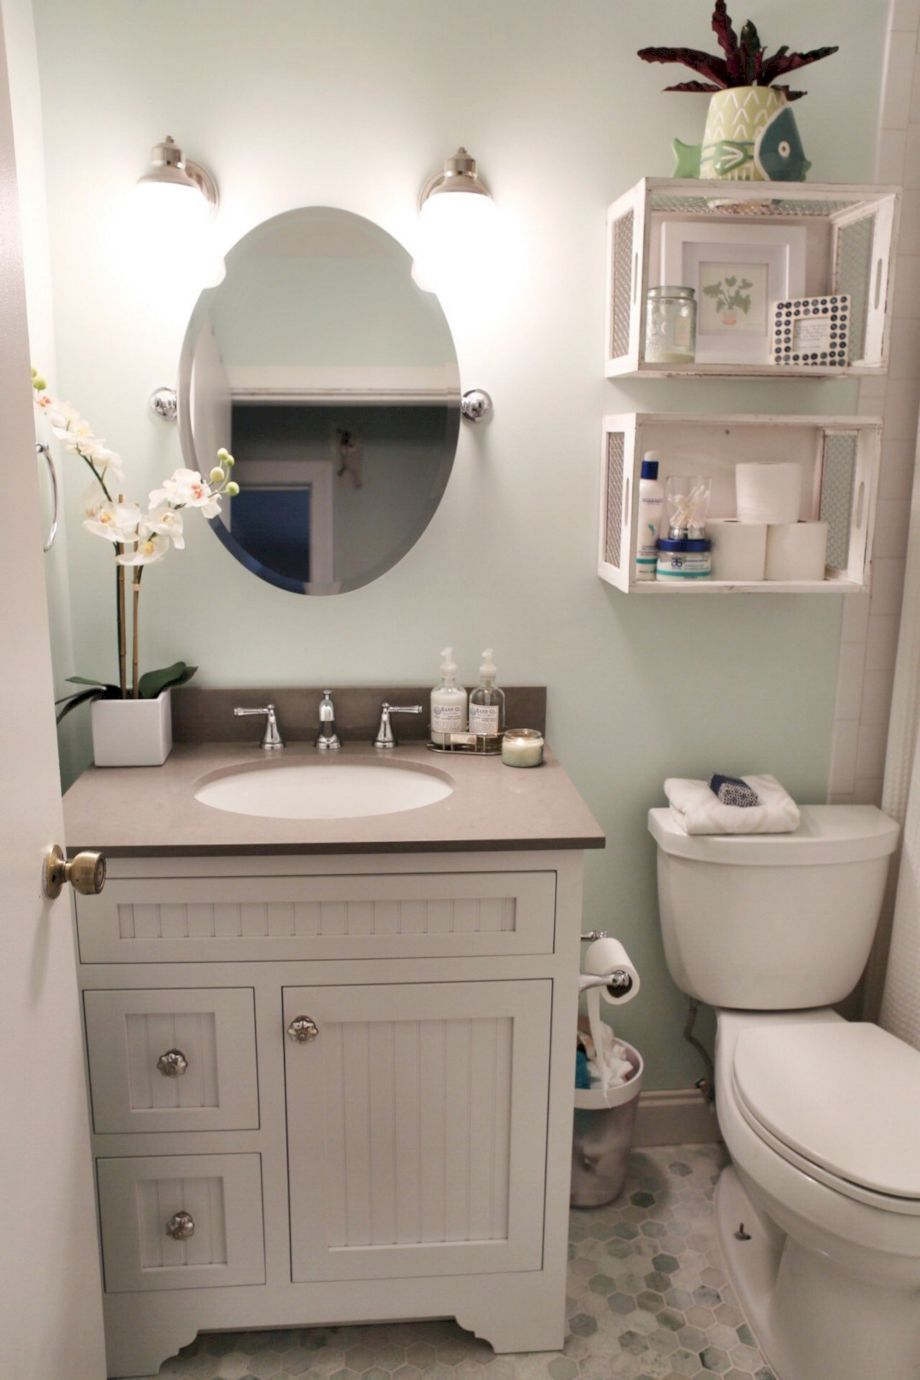 Small Bathroom Designs On A Budget Impressive Amazing 72 Lovely Small Master Bathroom Remodel On A Budget Https Inspiration Design